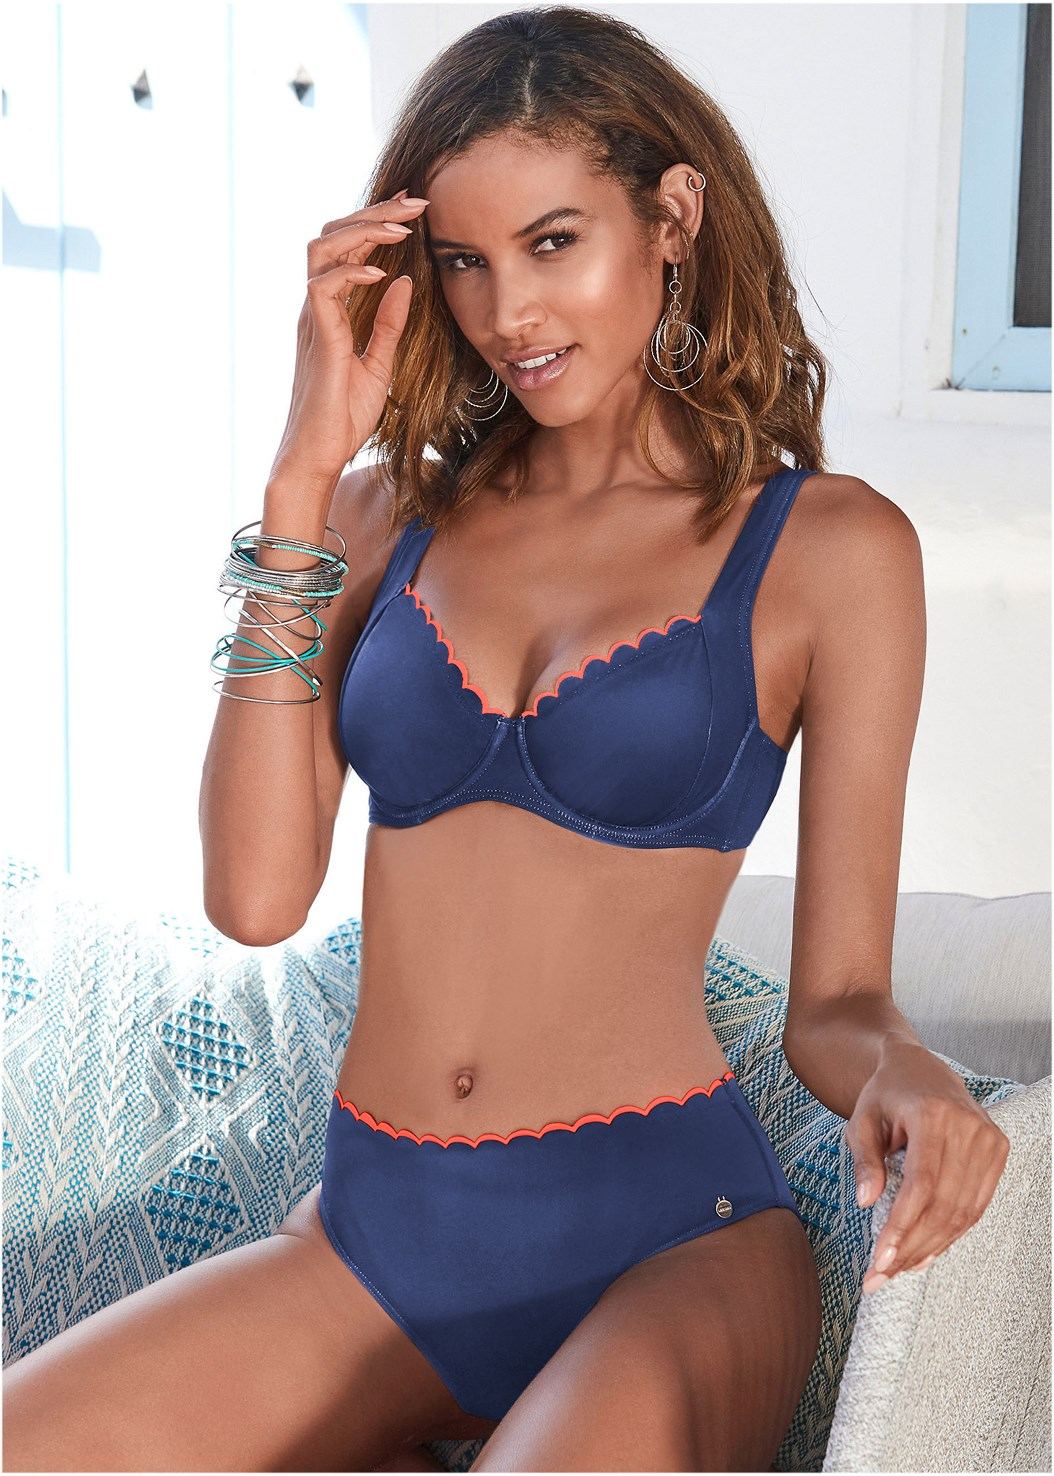 Scalloped Underwire Top,Scalloped Mid Rise Bottom